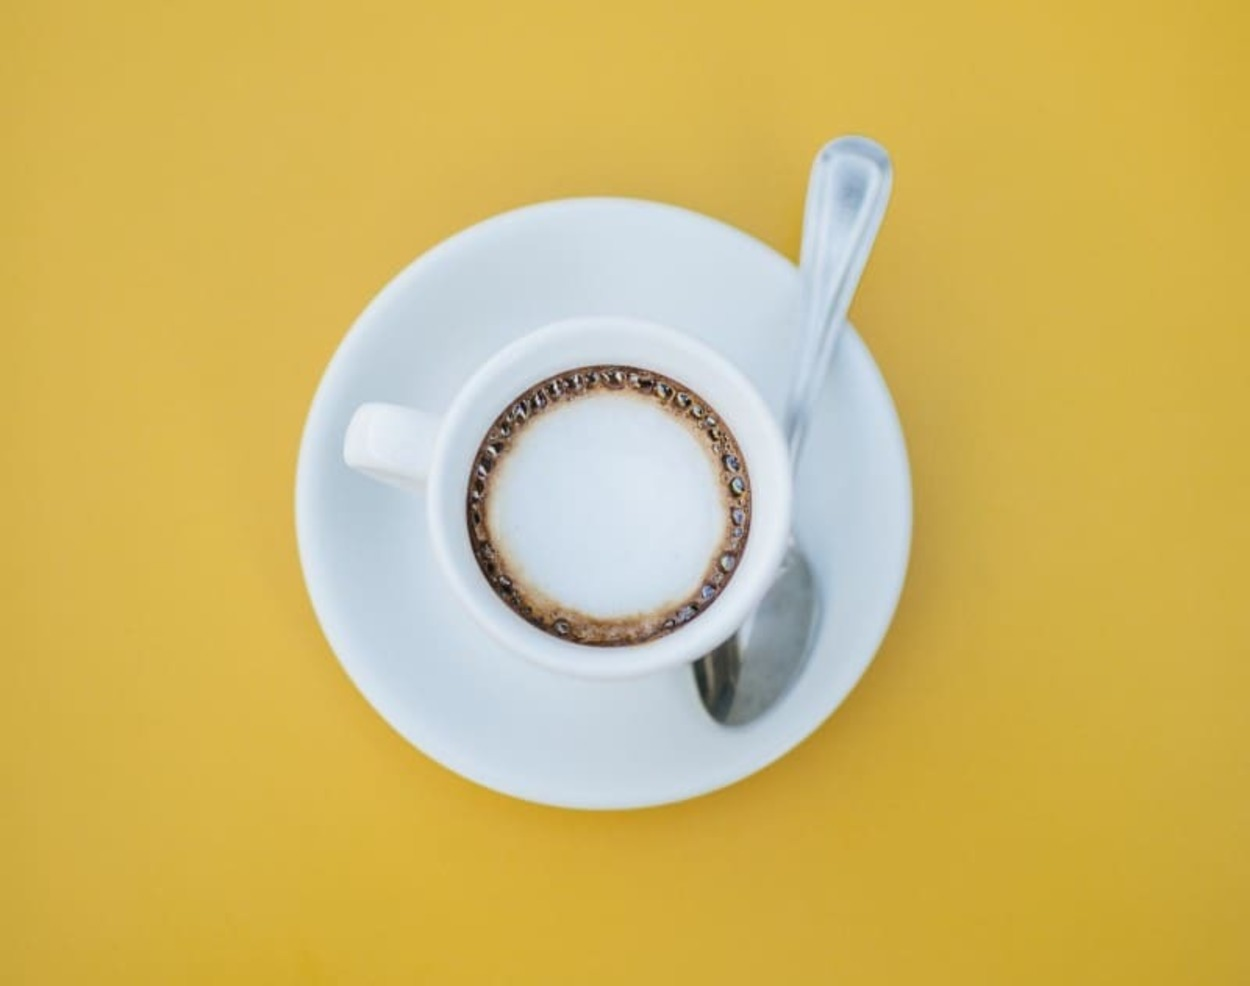 a cup of coffee on a small plate with a spoon